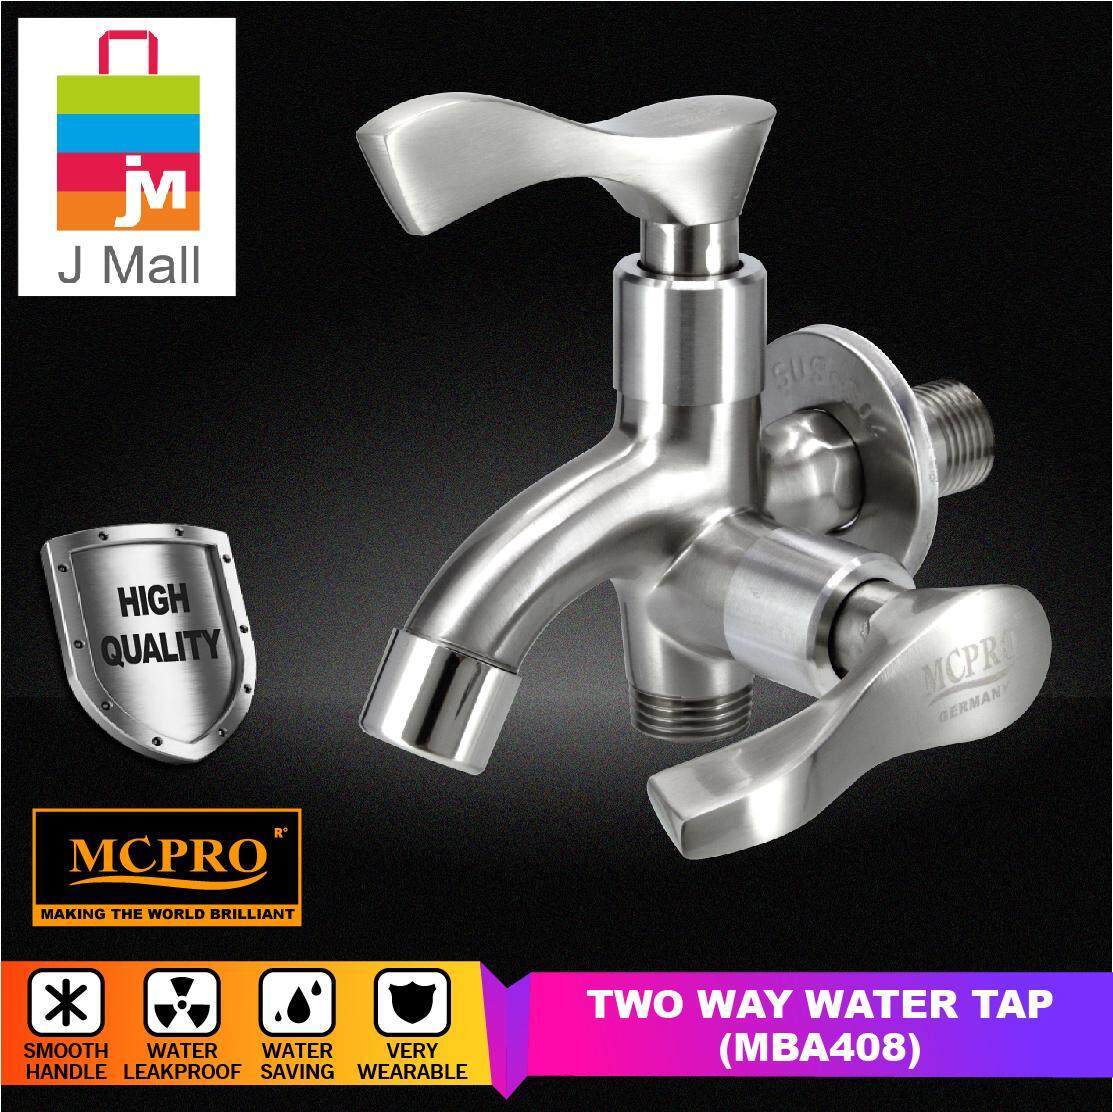 MCPRO SATIN FINISH WALL BATHROOM FAUCET TWO WAY TAP (MBA408)